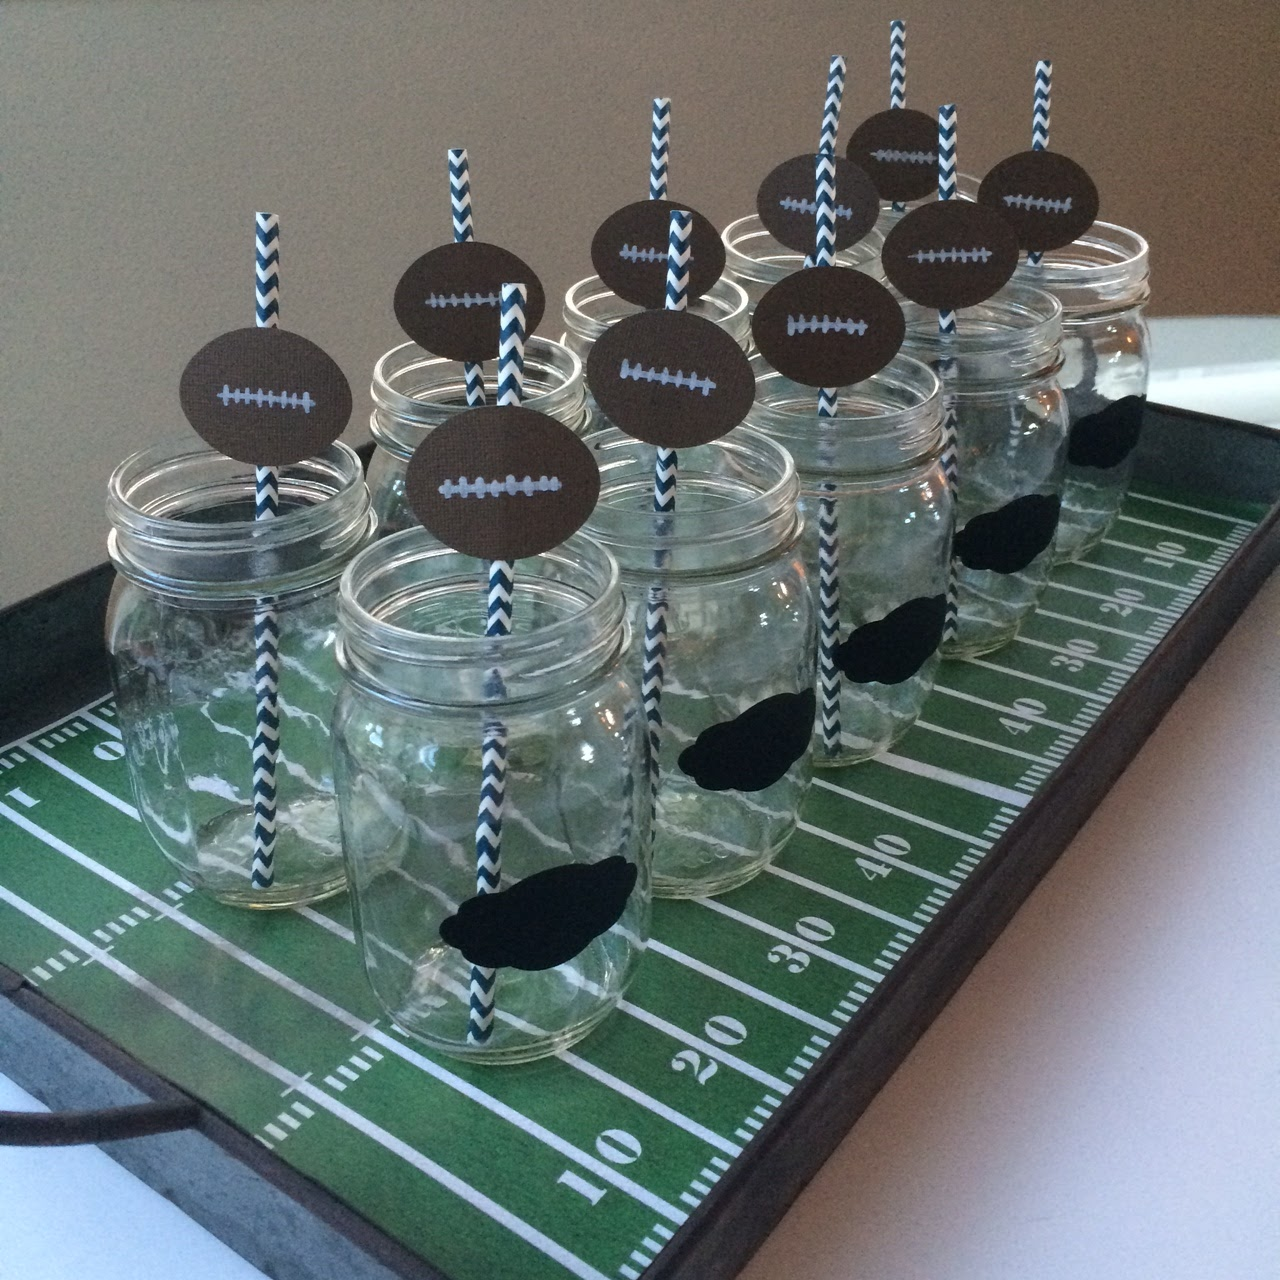 Super Bowl Party Tray @craftsavvy @sarahowens #craftwarehouse #superbowl #party #diy #masonjars